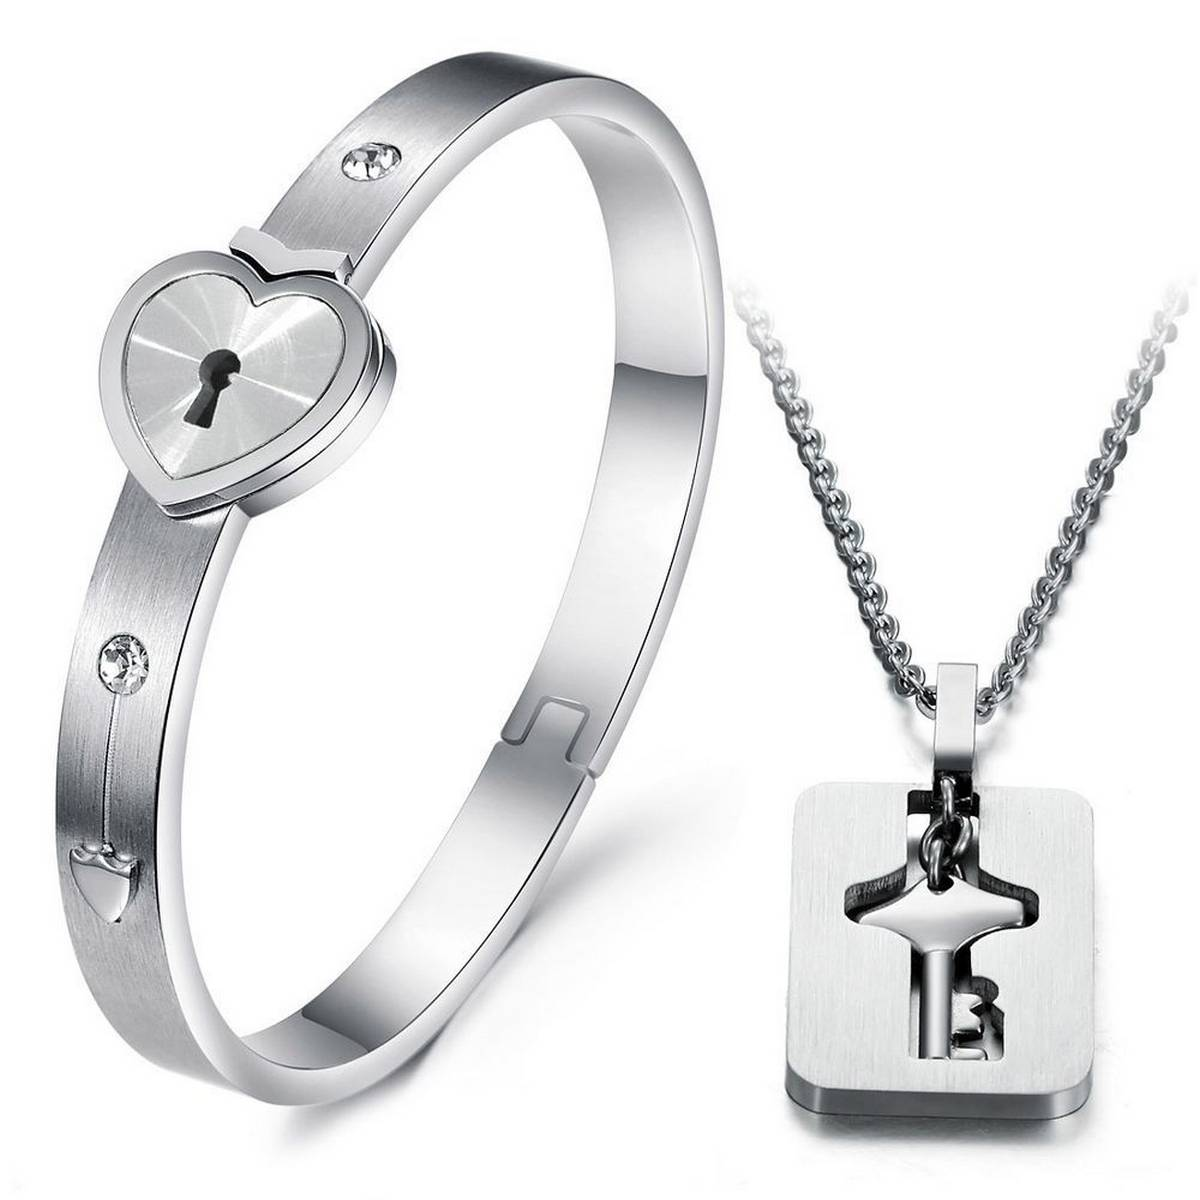 A Couple Lovers Jewelry Love Heart Lock Bracelet Stainless Jewelry-Gift-True Love Heart Lock Bracelets Bangles Key Pendant Necklace Couples